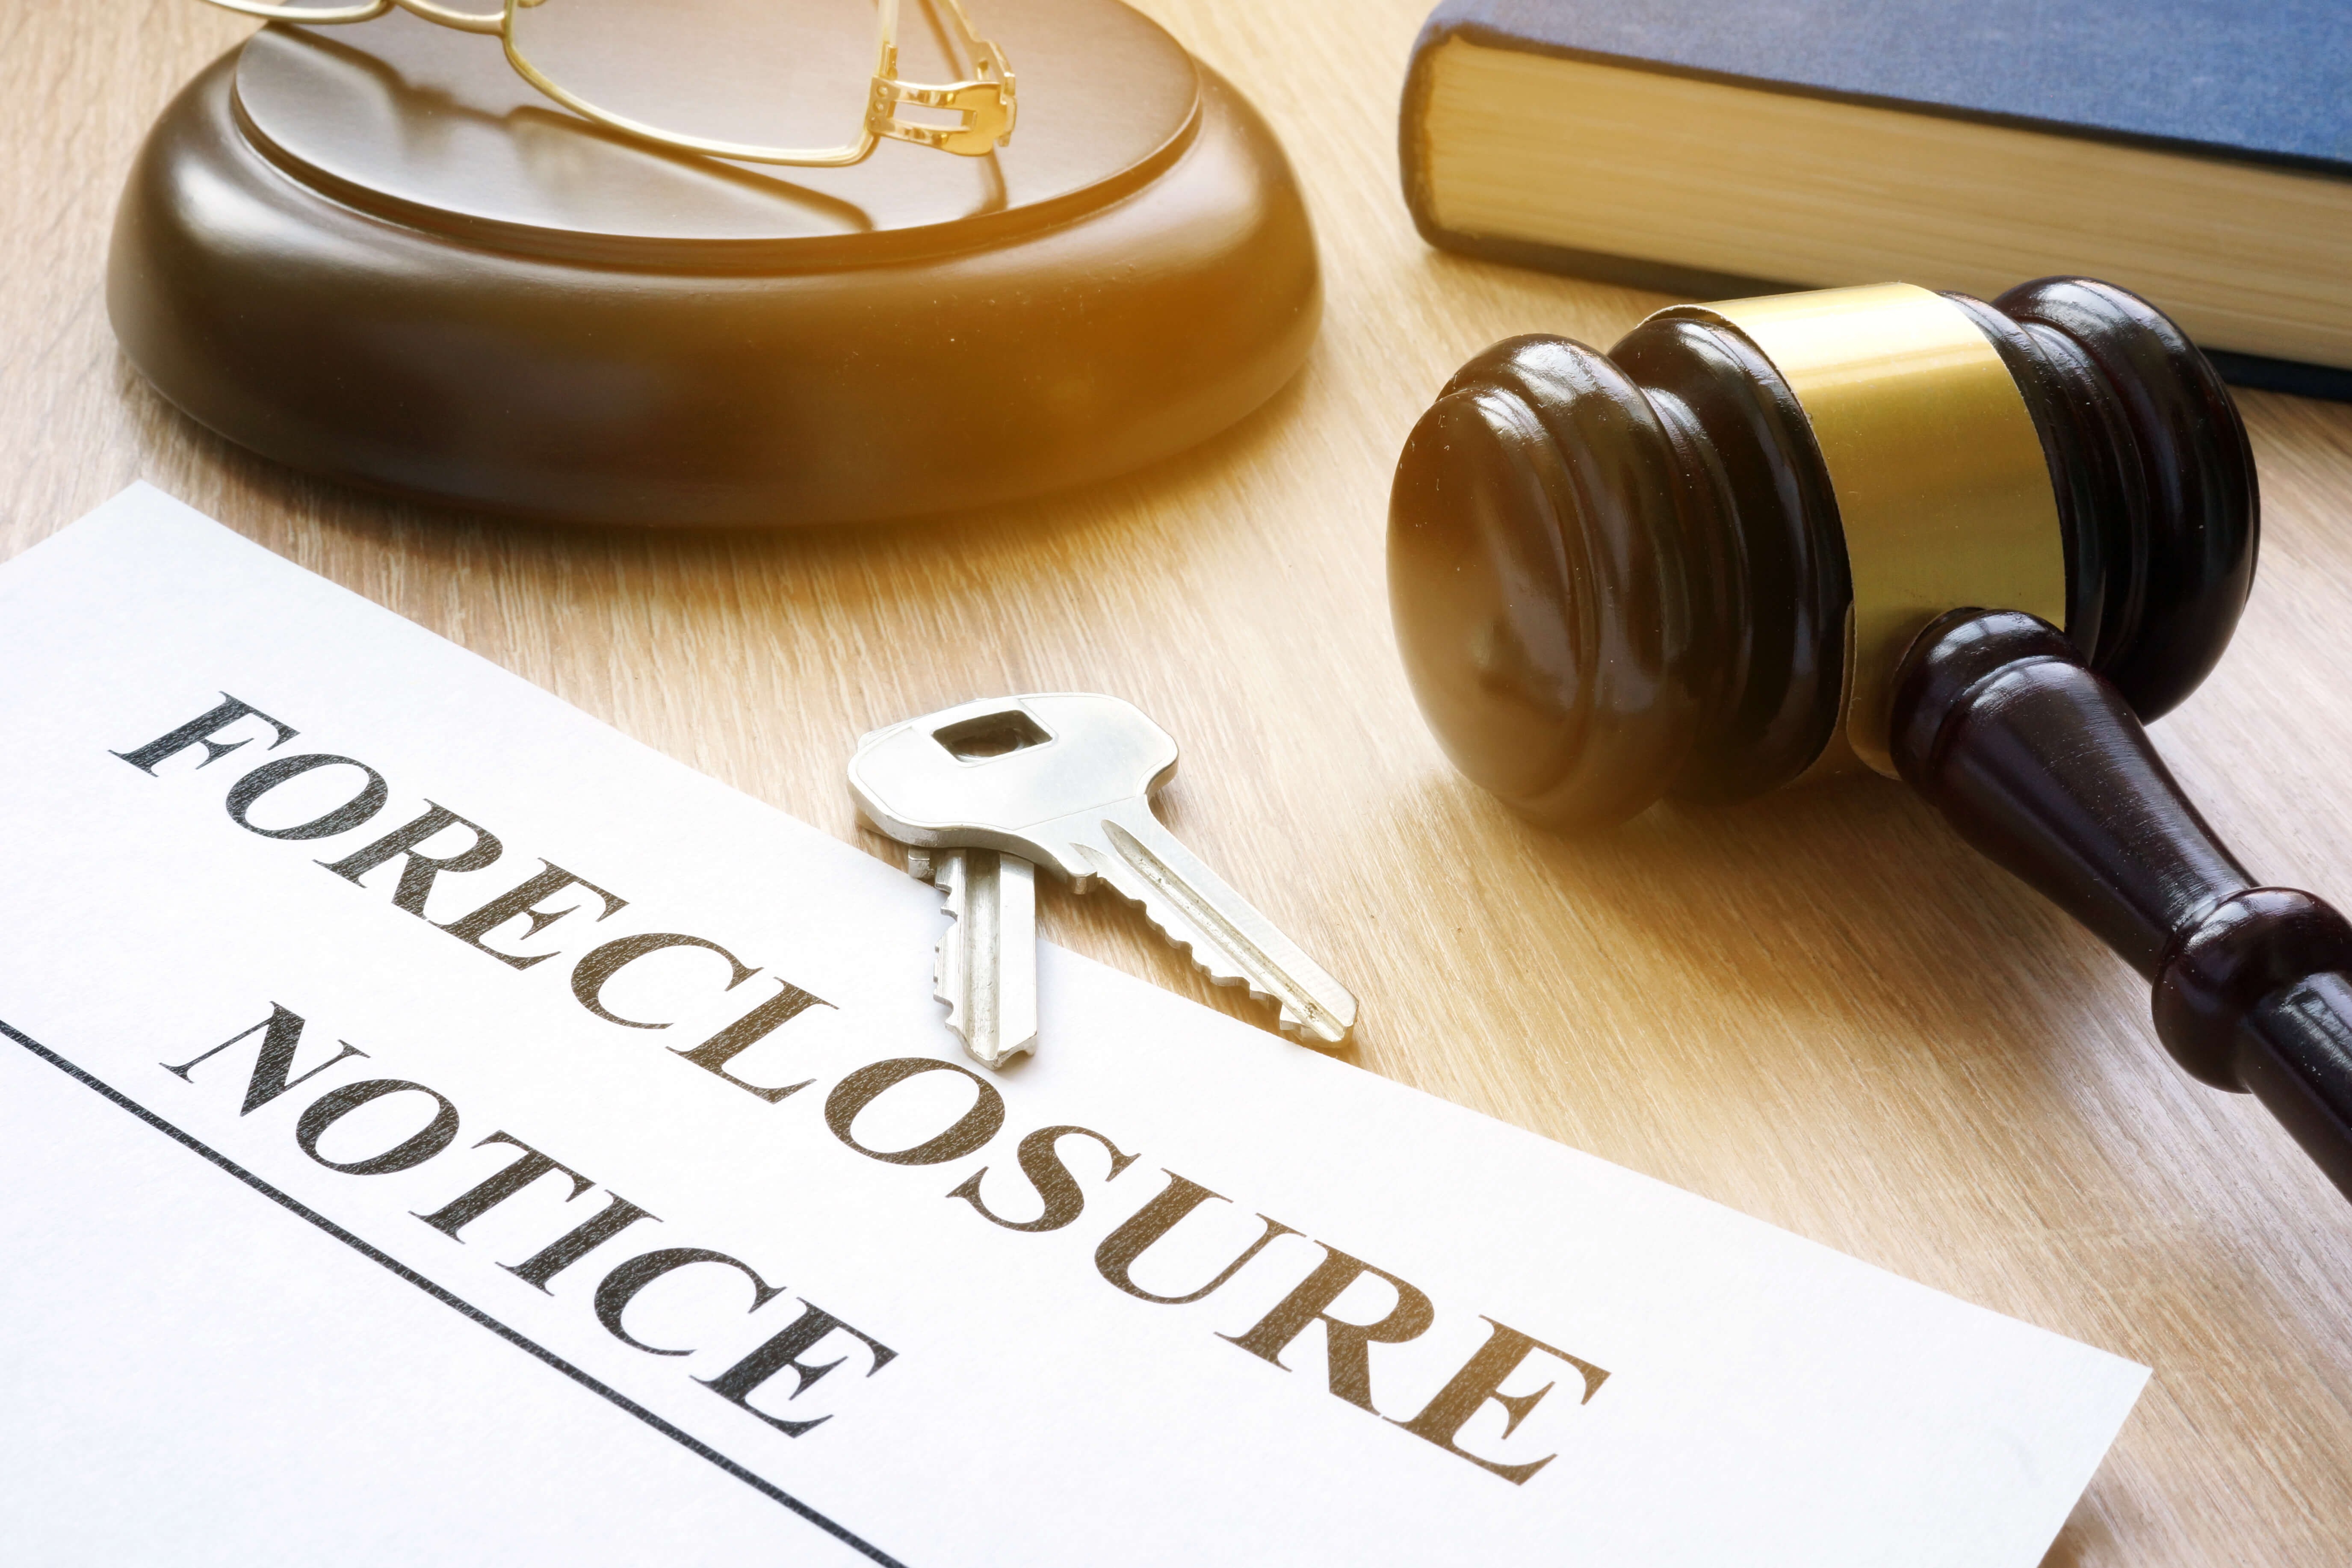 Banks have to wait longer to foreclose on Mortgage loans